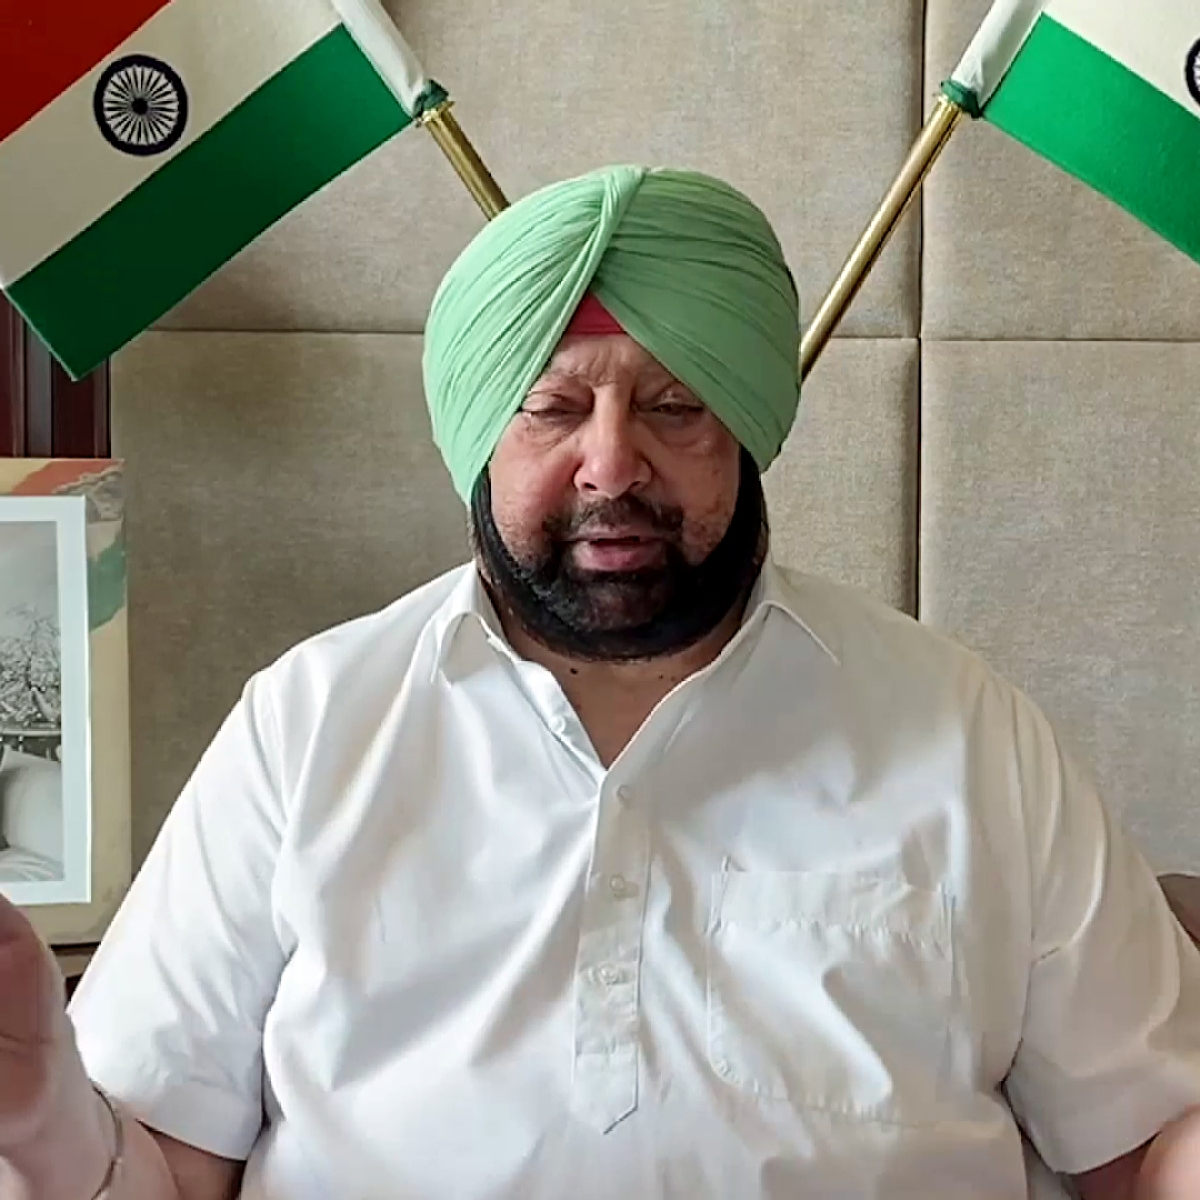 Union Budget reflects Centre's efforts to sideline non-BJP ruled states: Punjab CM Amarinder Singh